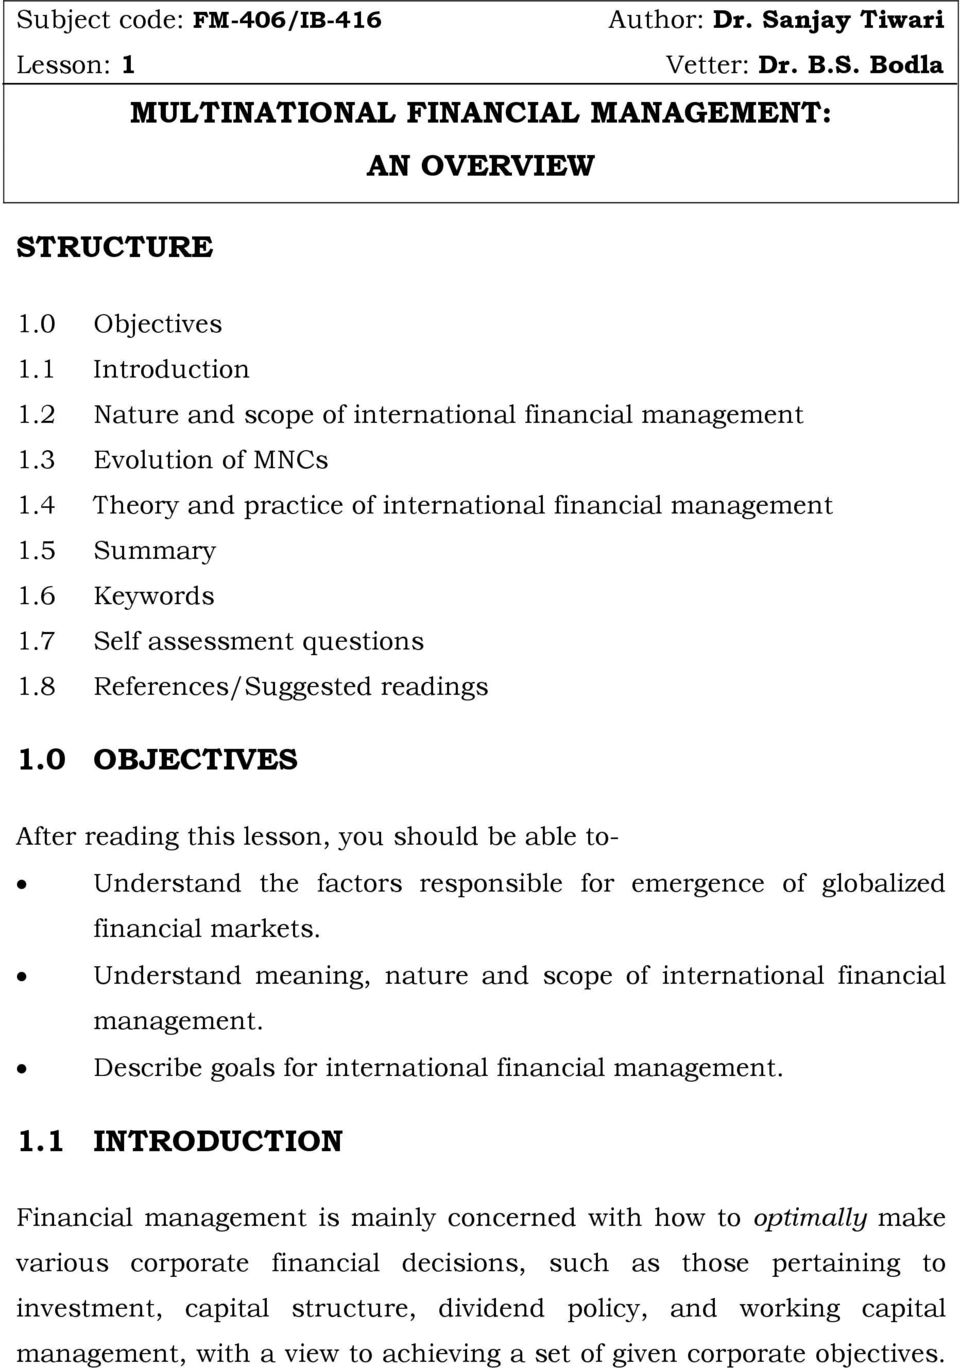 Goals and objectives of financial management